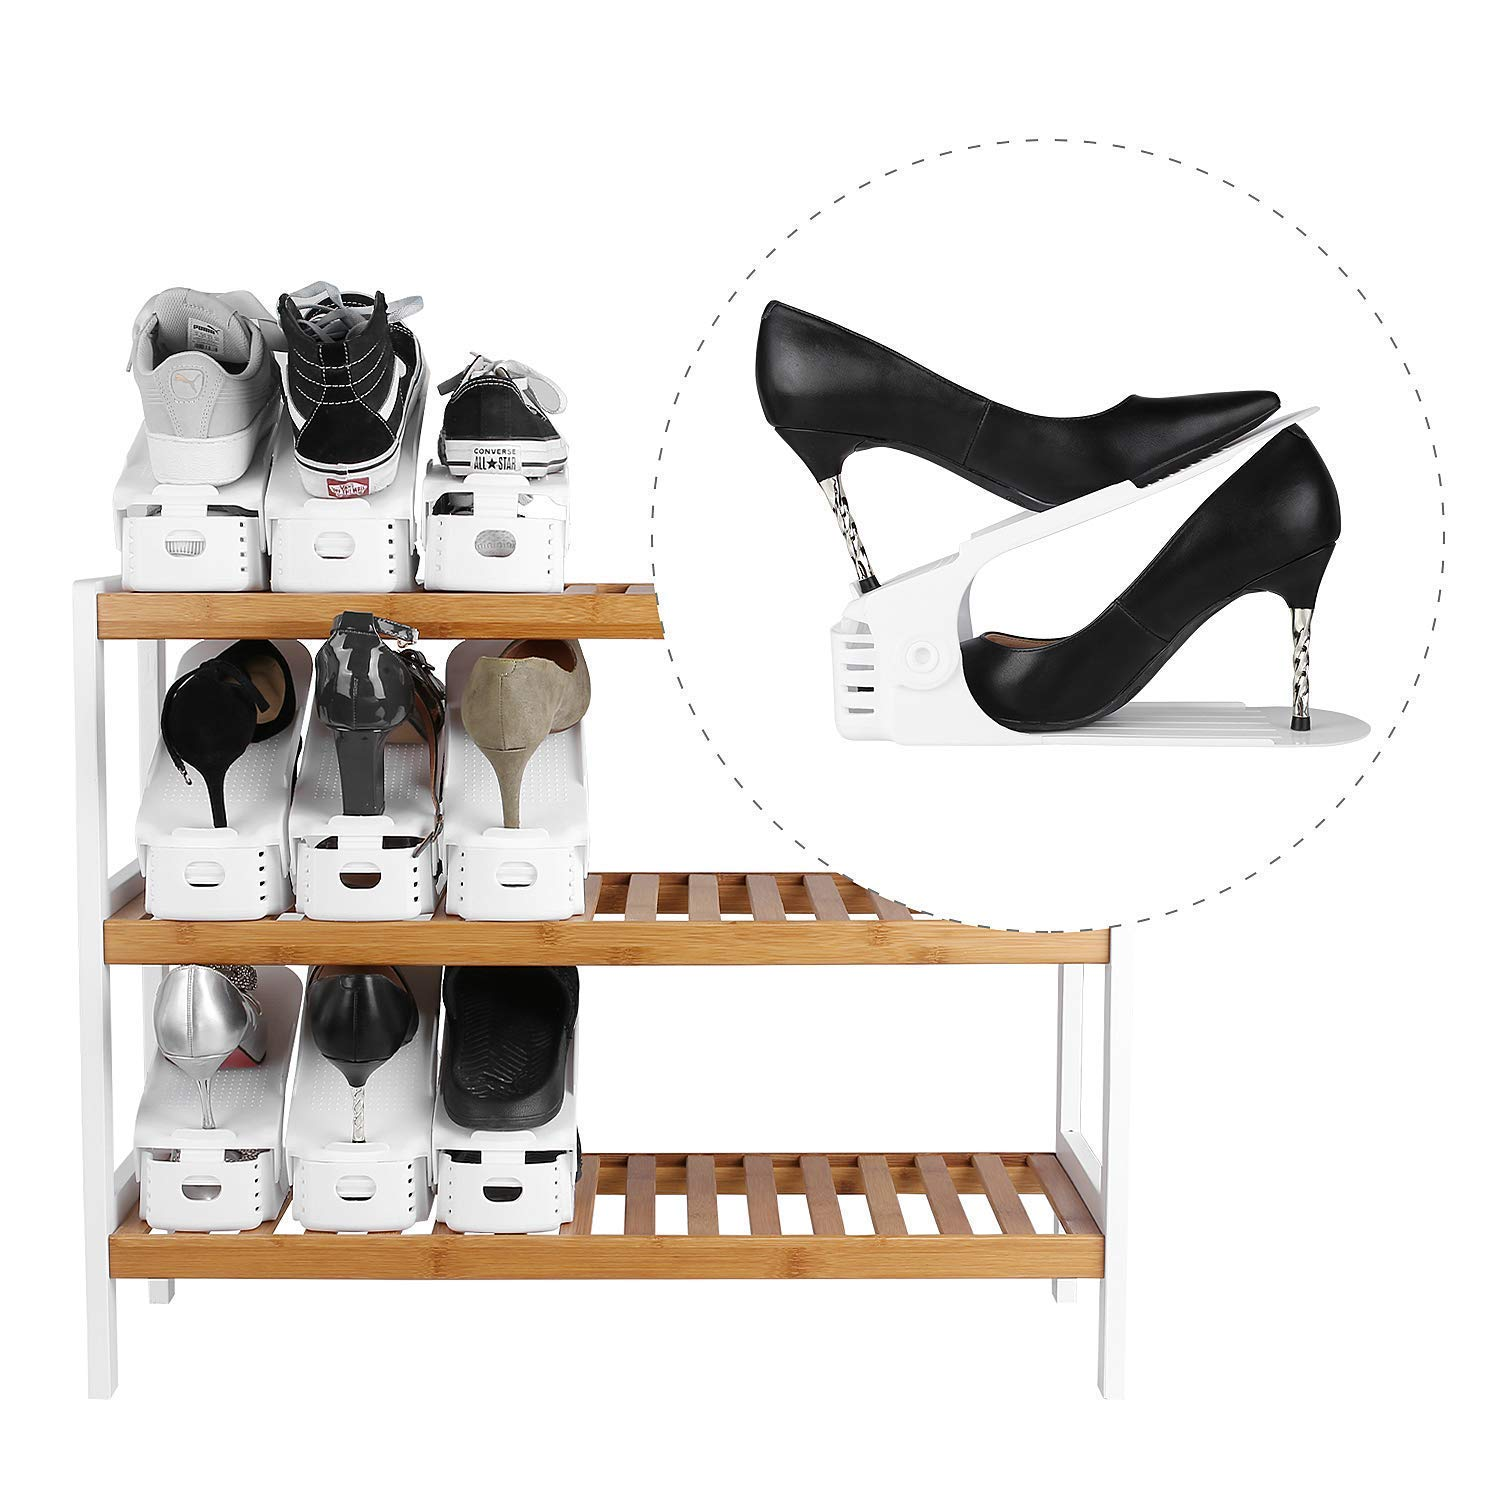 Image 5 - Best Lot DE 10 Adjustable Shoe Support For To Stack Shoes Shoe Organizer Space Saver a Shoes Support Rack Plastic White-in Shoe Racks & Organizers from Home & Garden